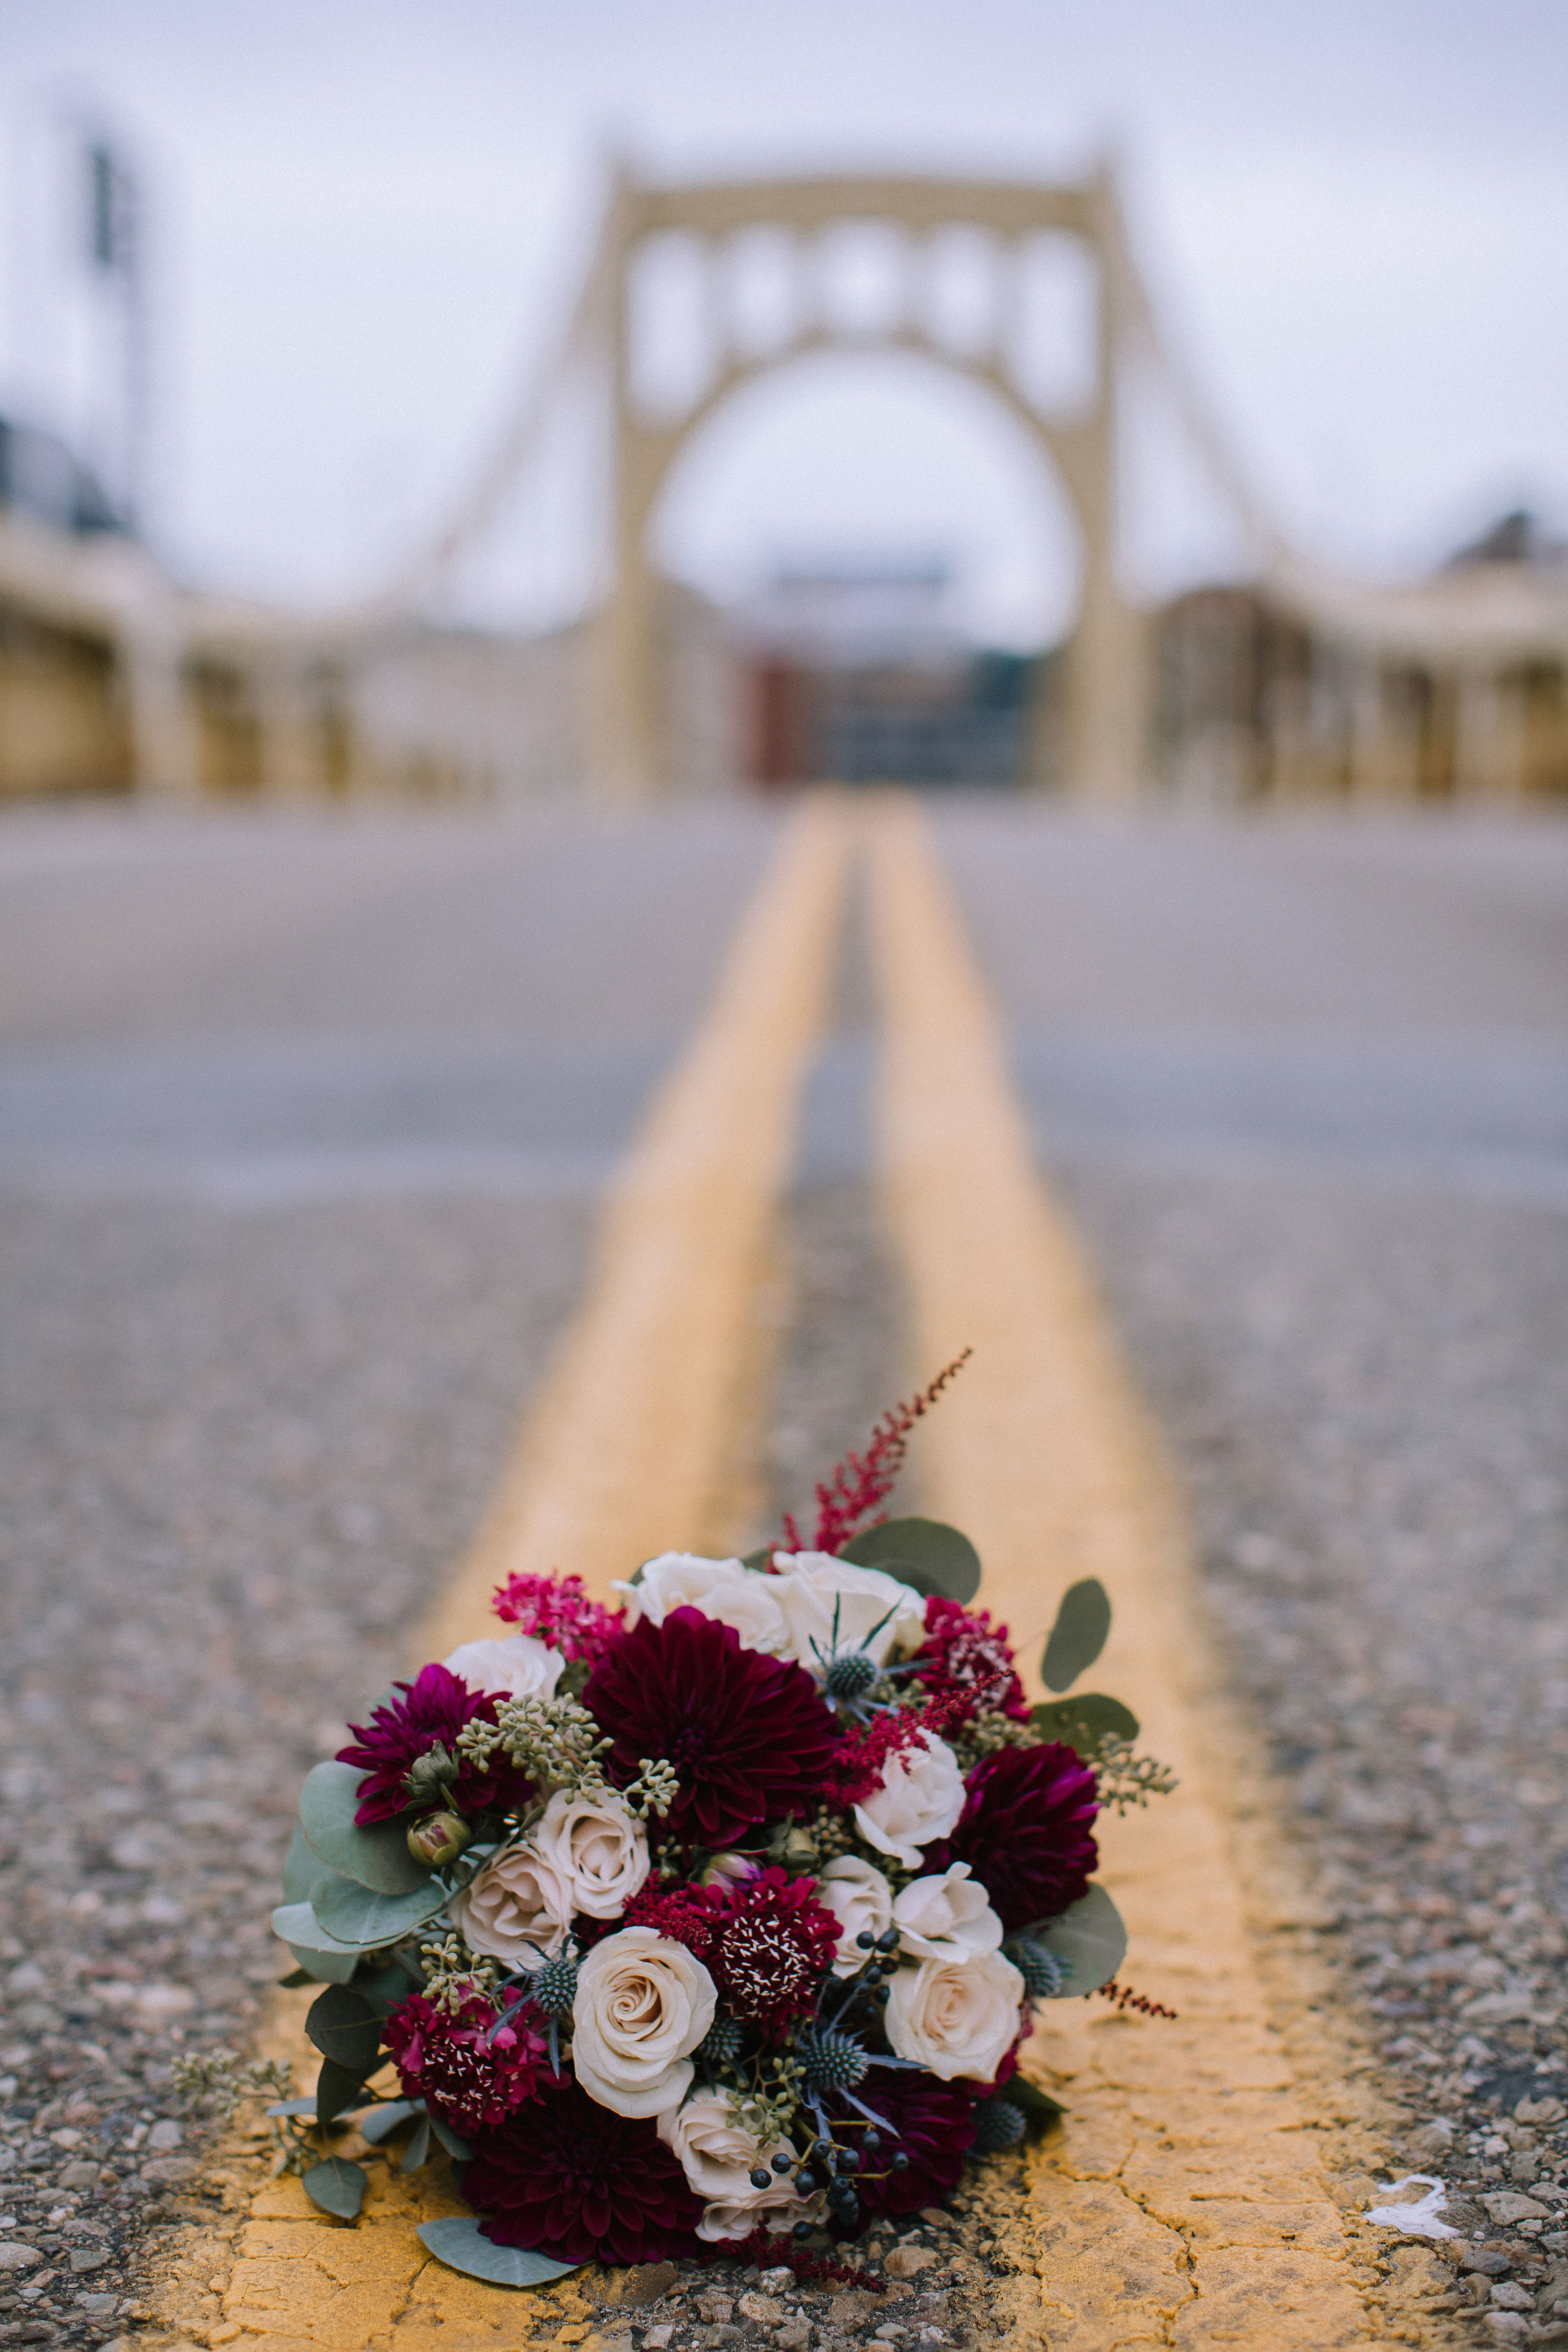 Wedding bouquet on city bridge for Pittsburgh wedding at Studio Slate planned by Exhale Events. Find more wedding inspiration at exhale-events.com!